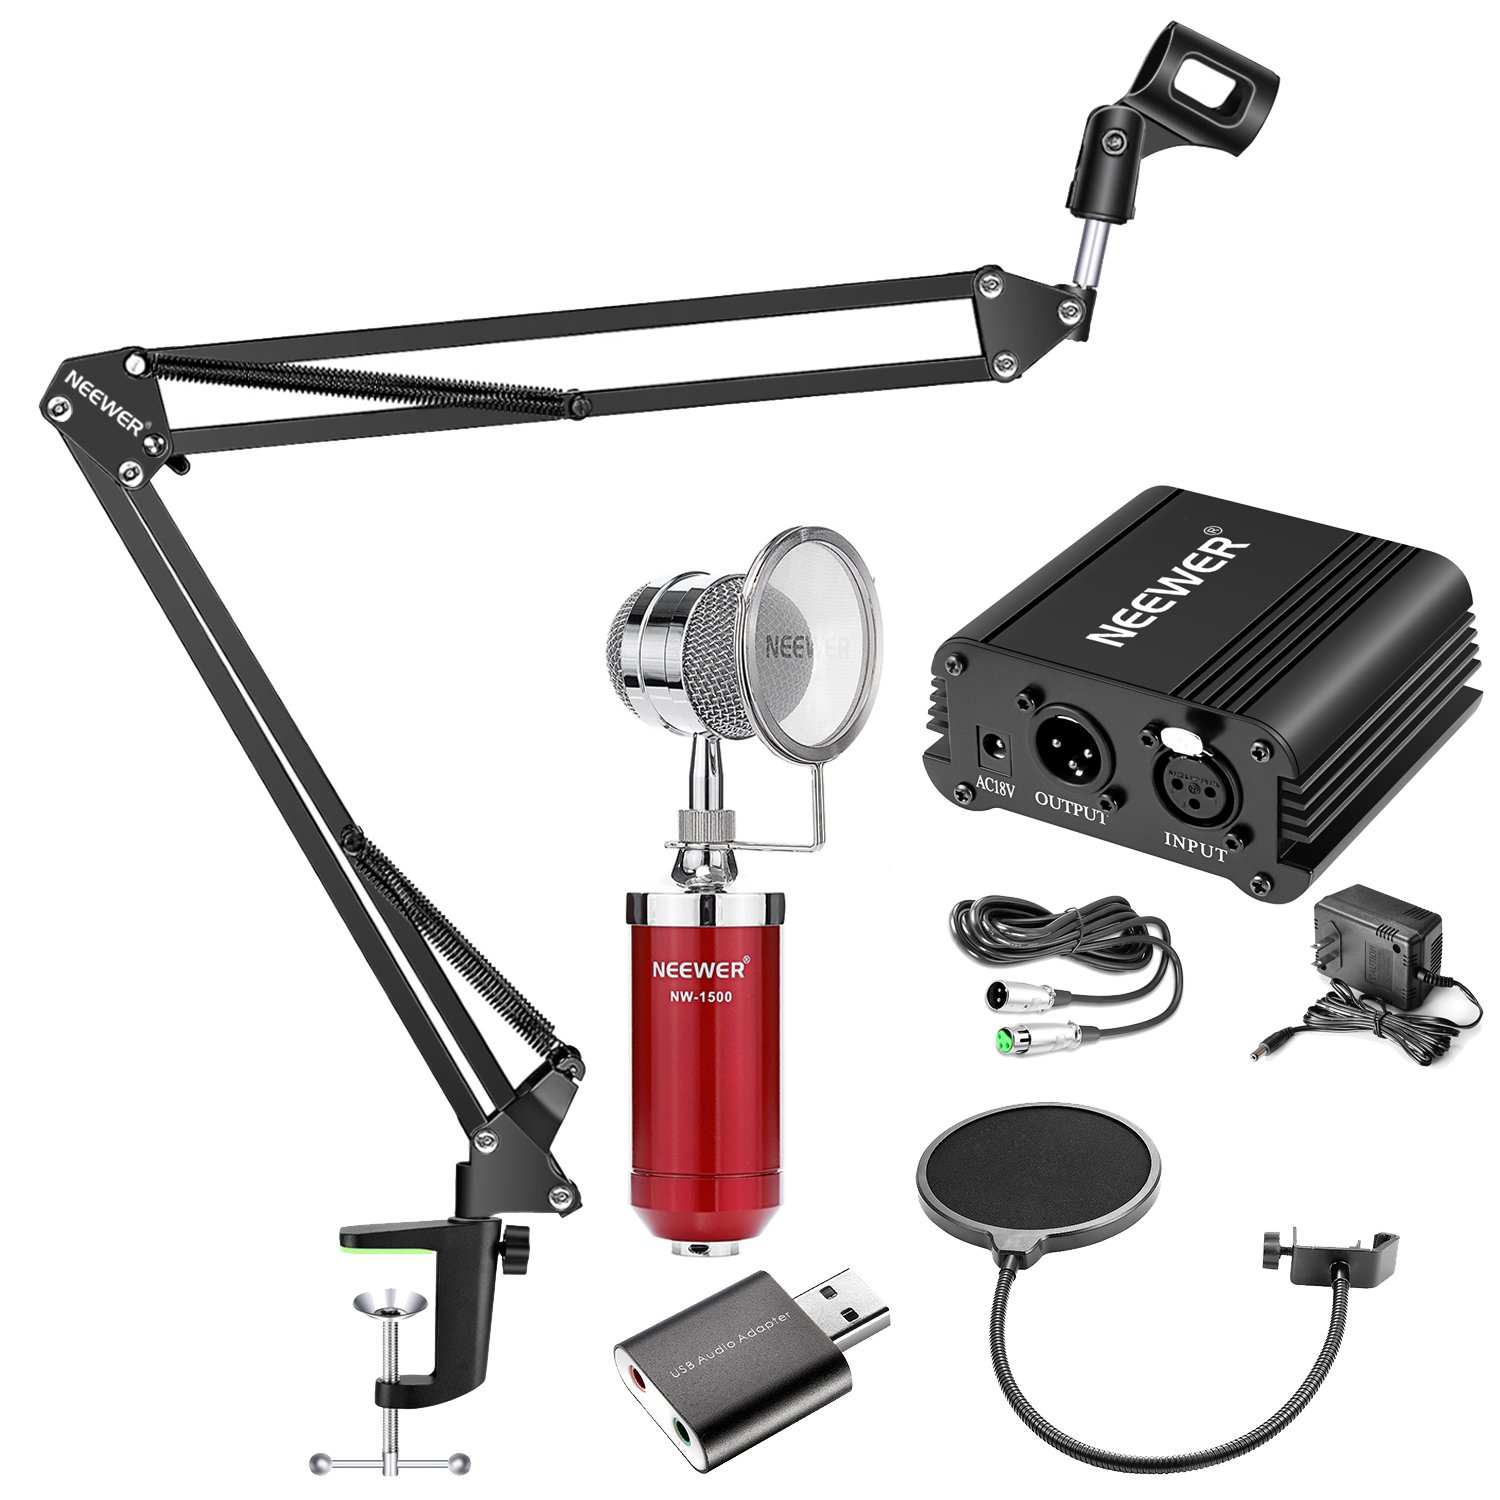 Neewer Condenser Microphone and Accessory Kit: NW-1500 Condenser Microphone (Red), NW-35 Suspension Boom Scissor Arm Stand,48V Phantom Power Supply, NW(B-3) Pop Filter and USB 2.0 Sound Adapter 90091701@@##1